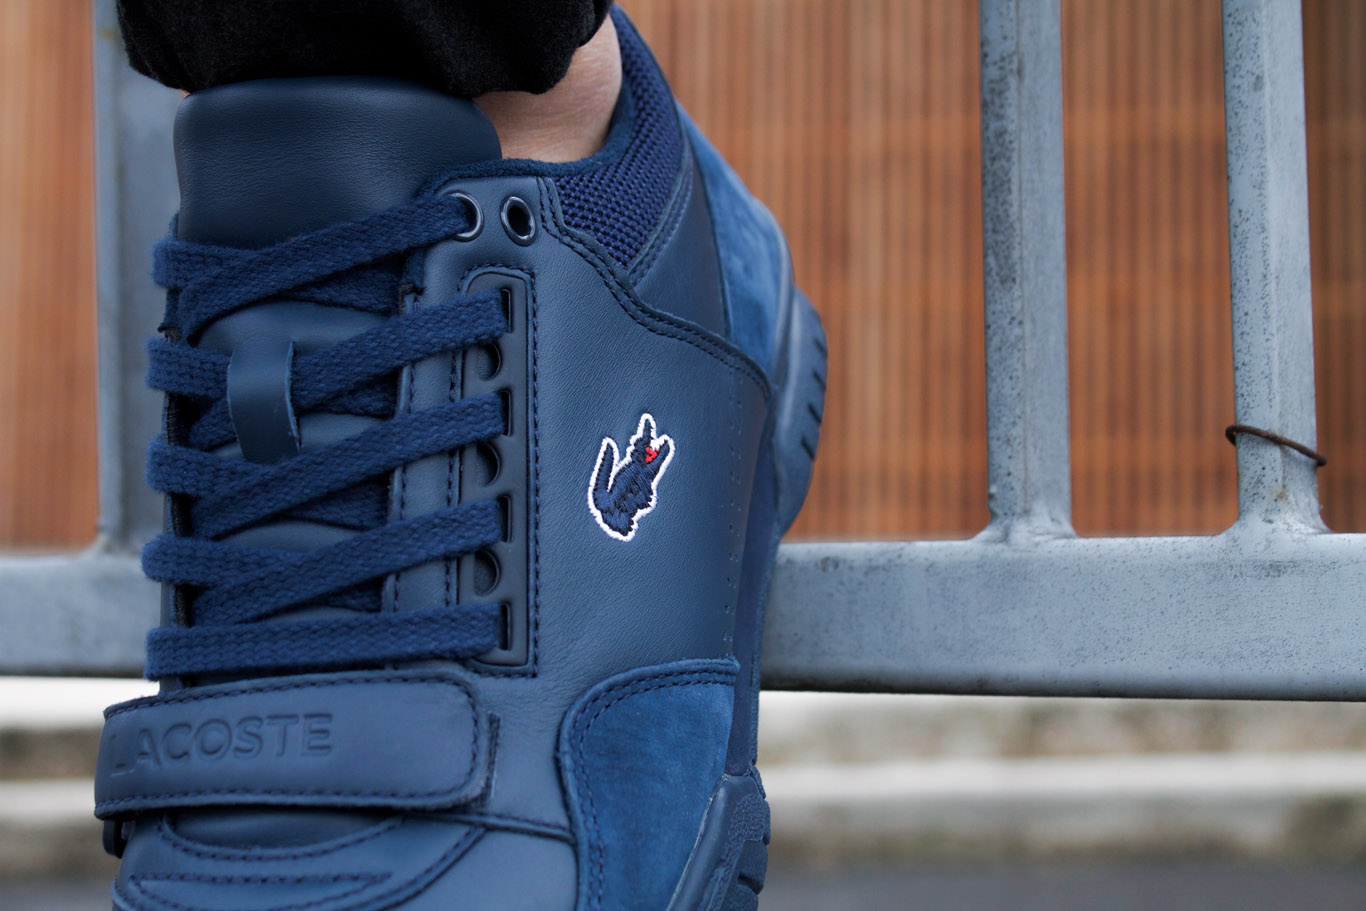 Basket Lacoste Missouri G117 1 LEATHER NAVY 4